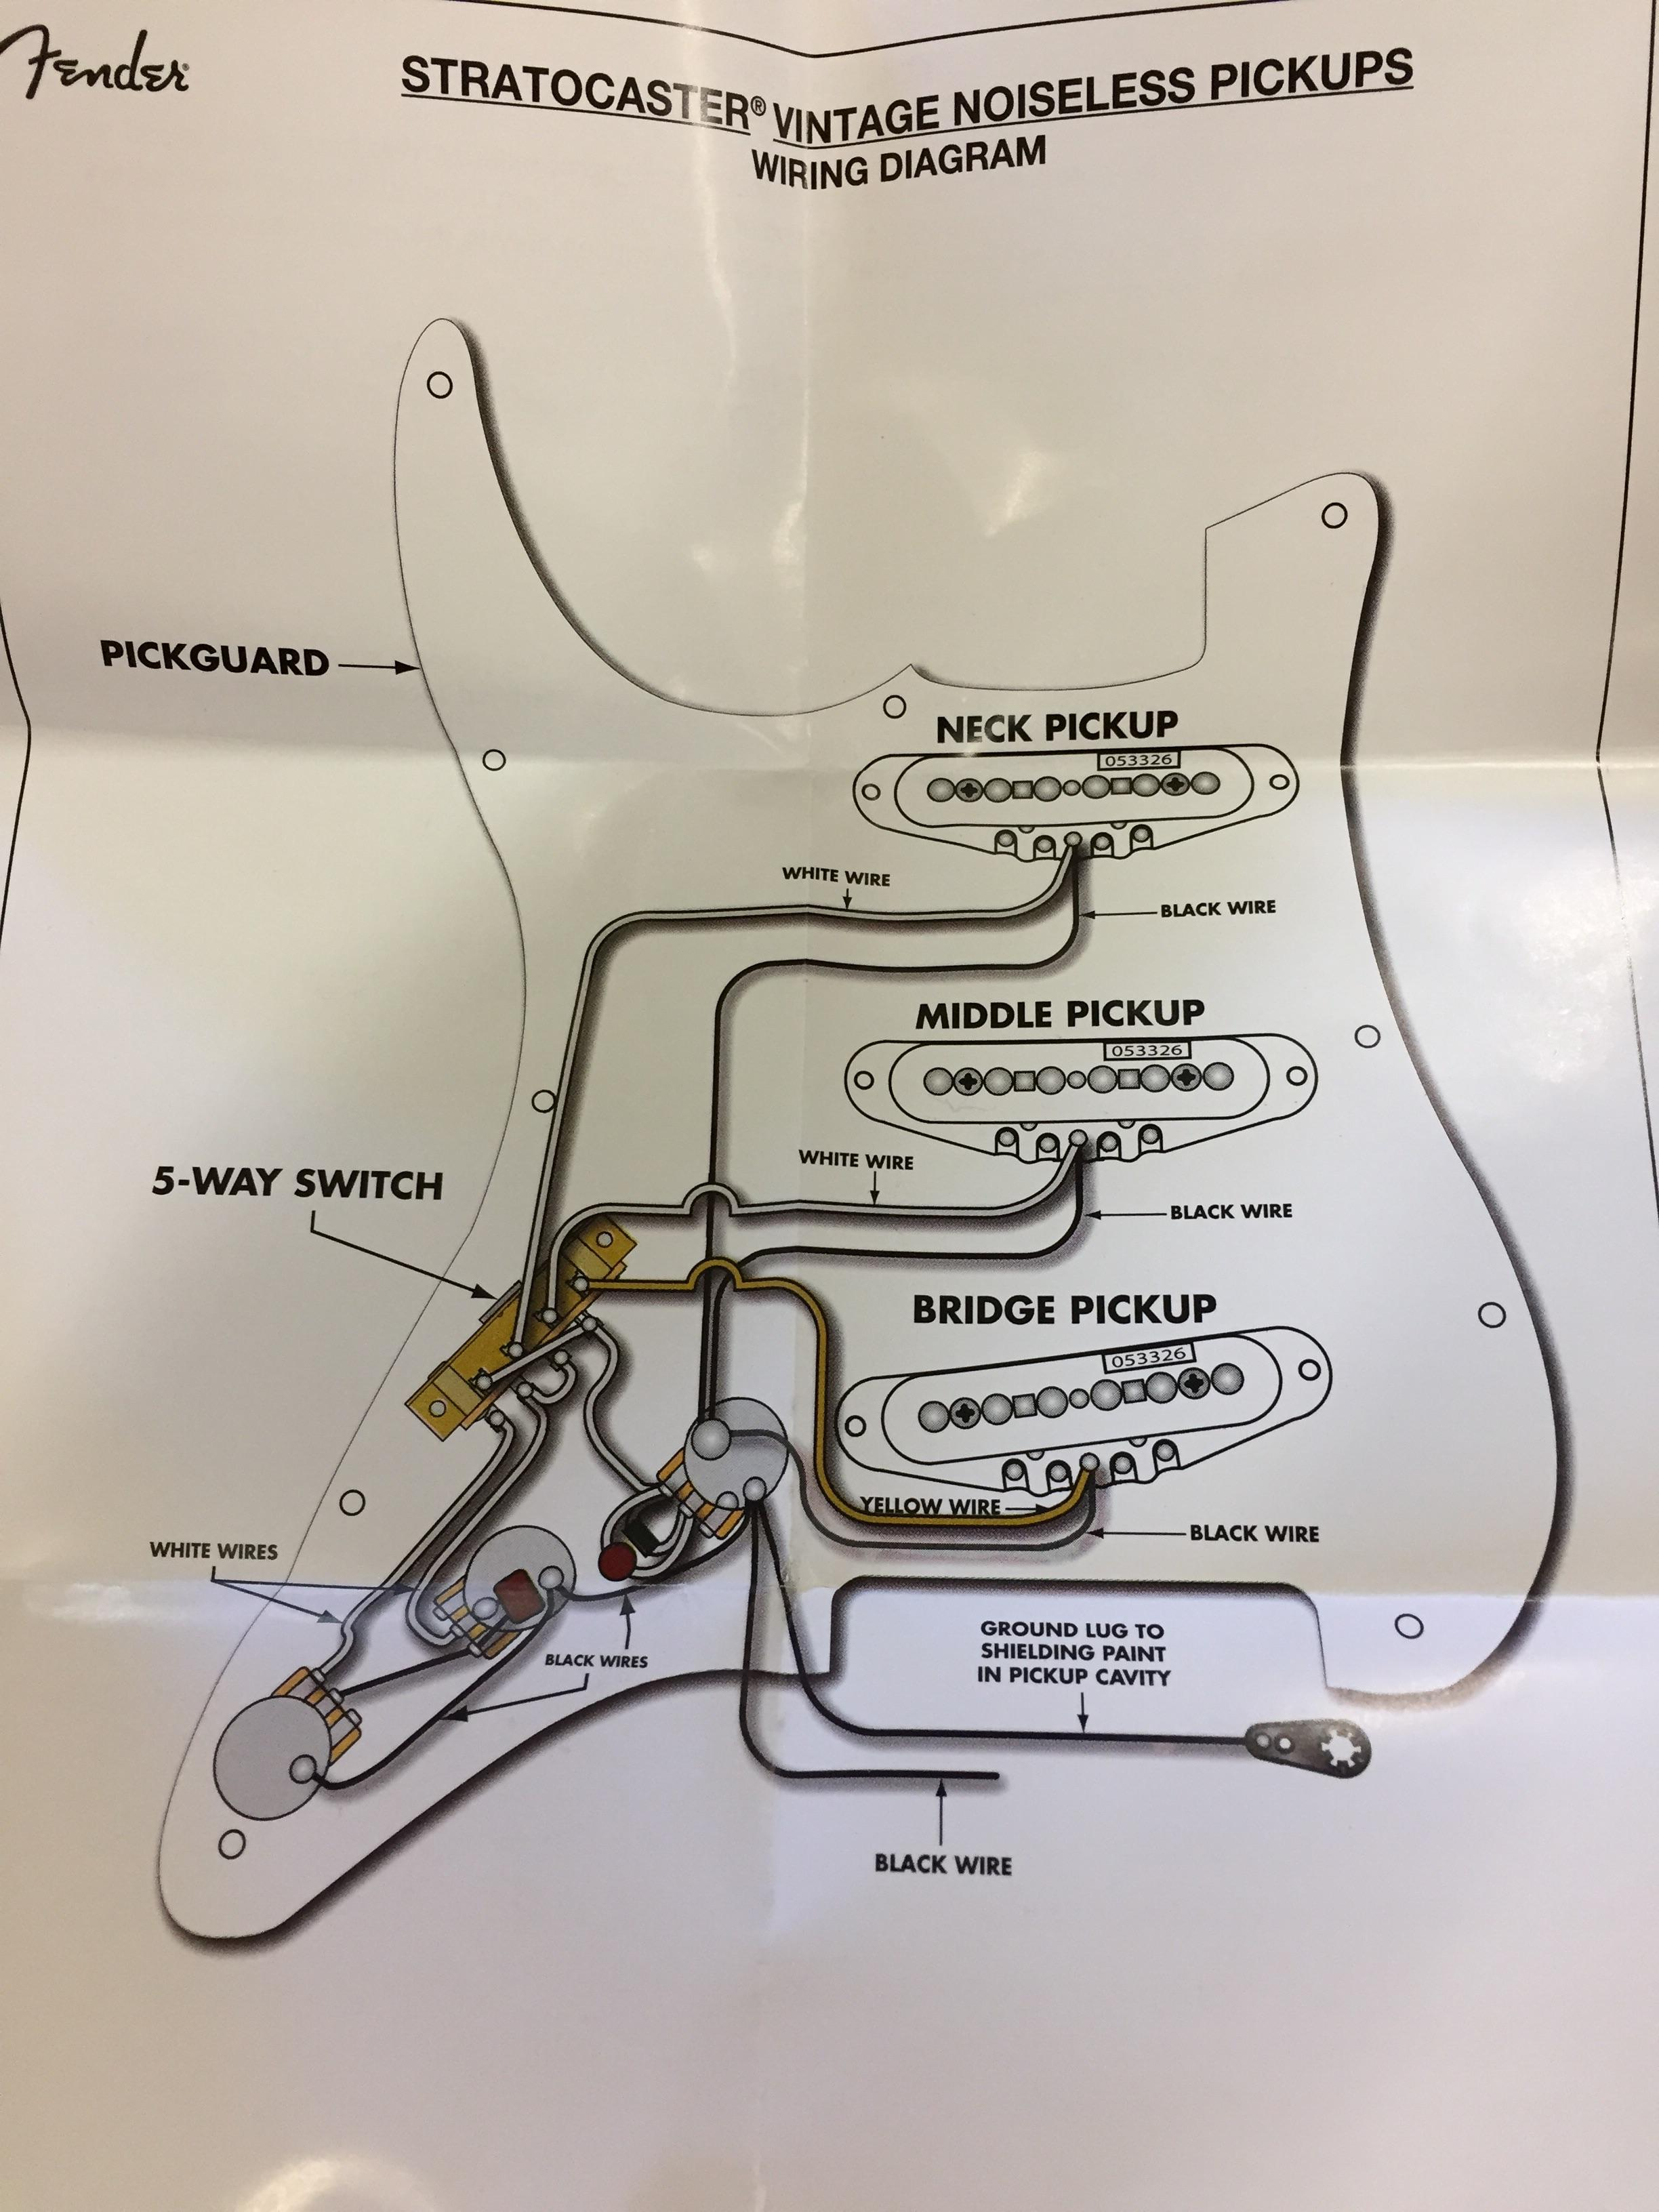 fender n3 wiring diagram warehouse management process flow vintage noiseless pickups